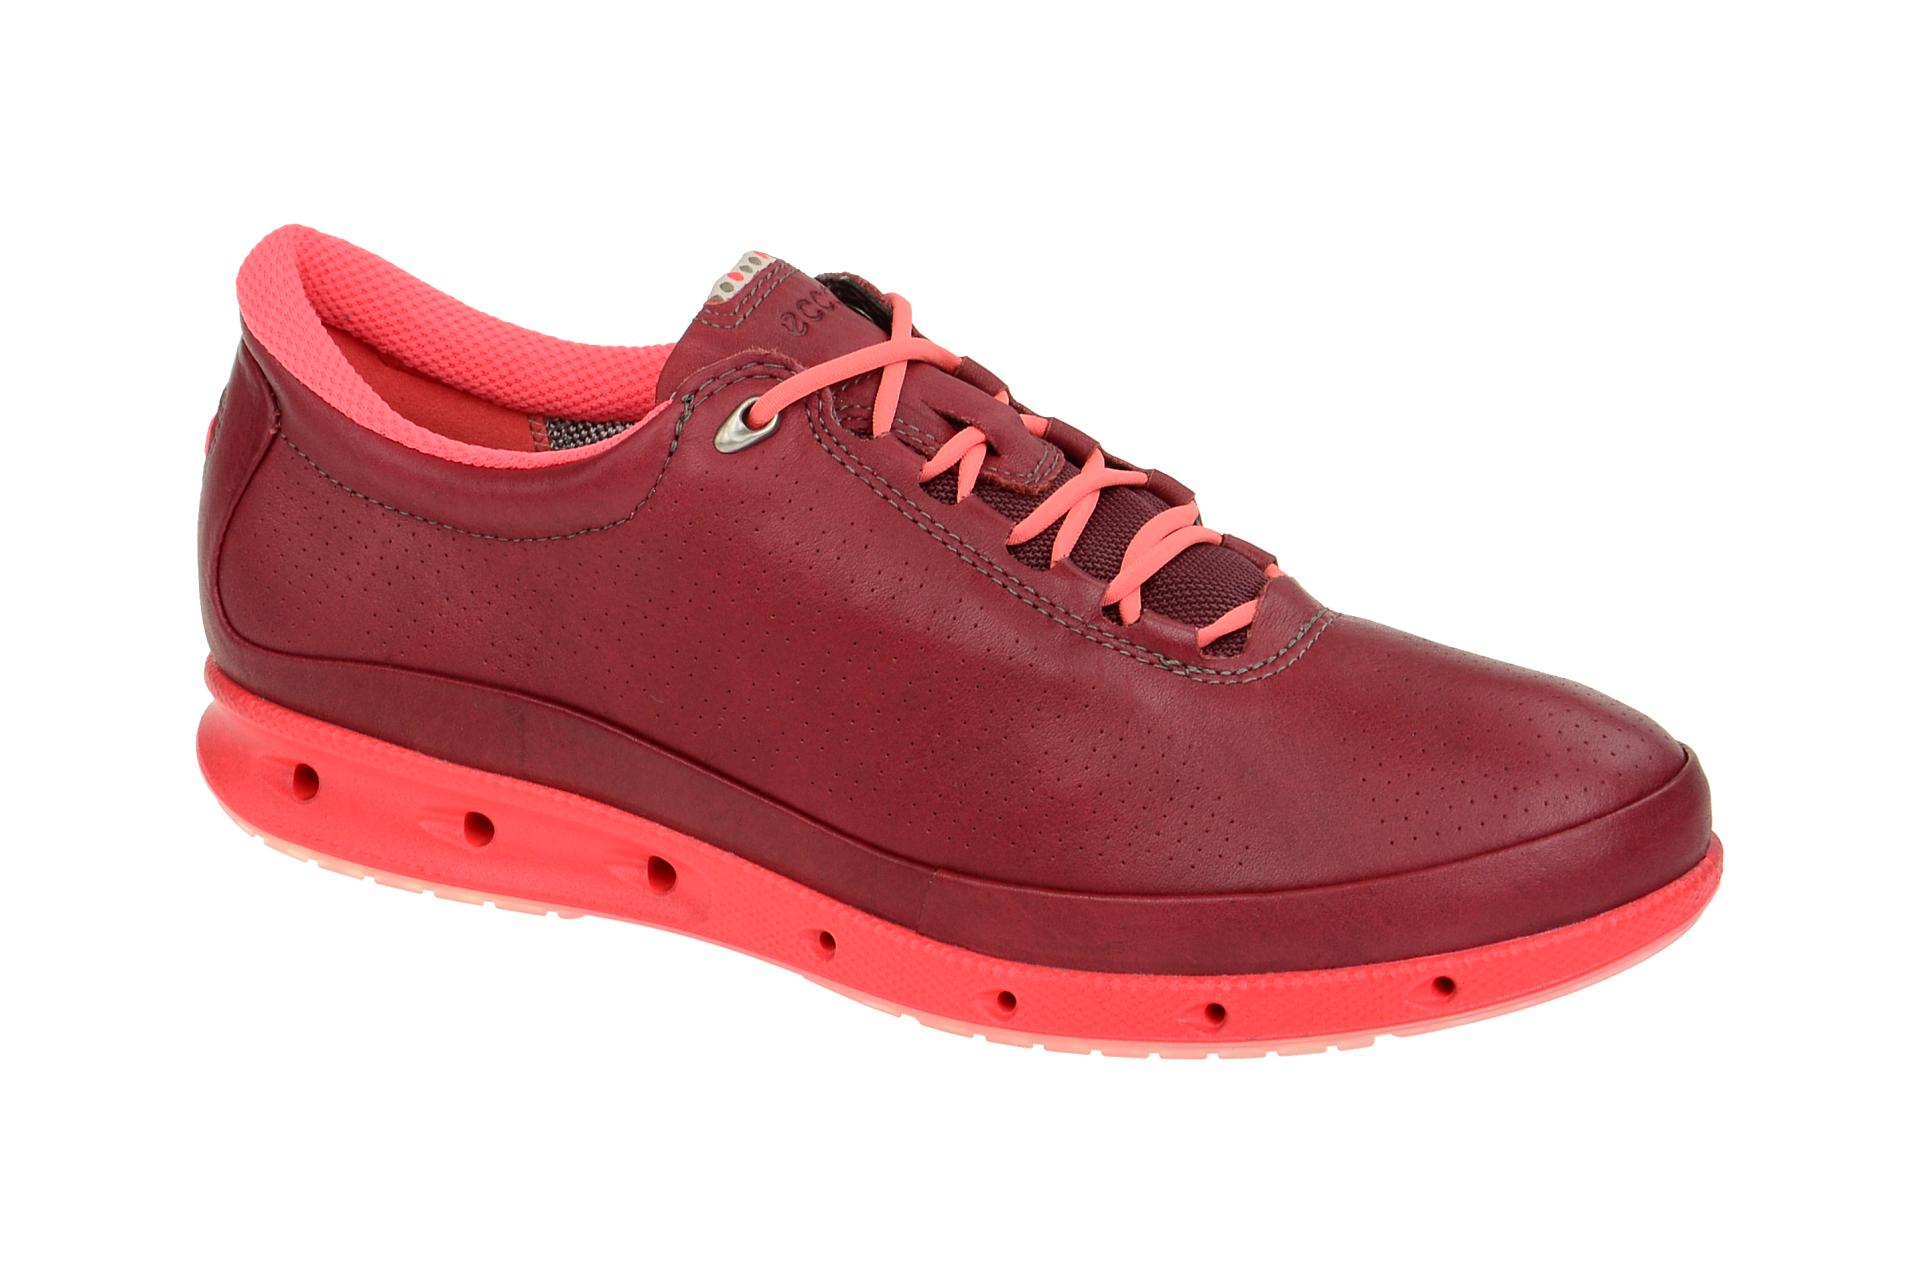 low priced affa2 781d1 Ecco Cool Schuhe rot pink GORE-TEX Surround